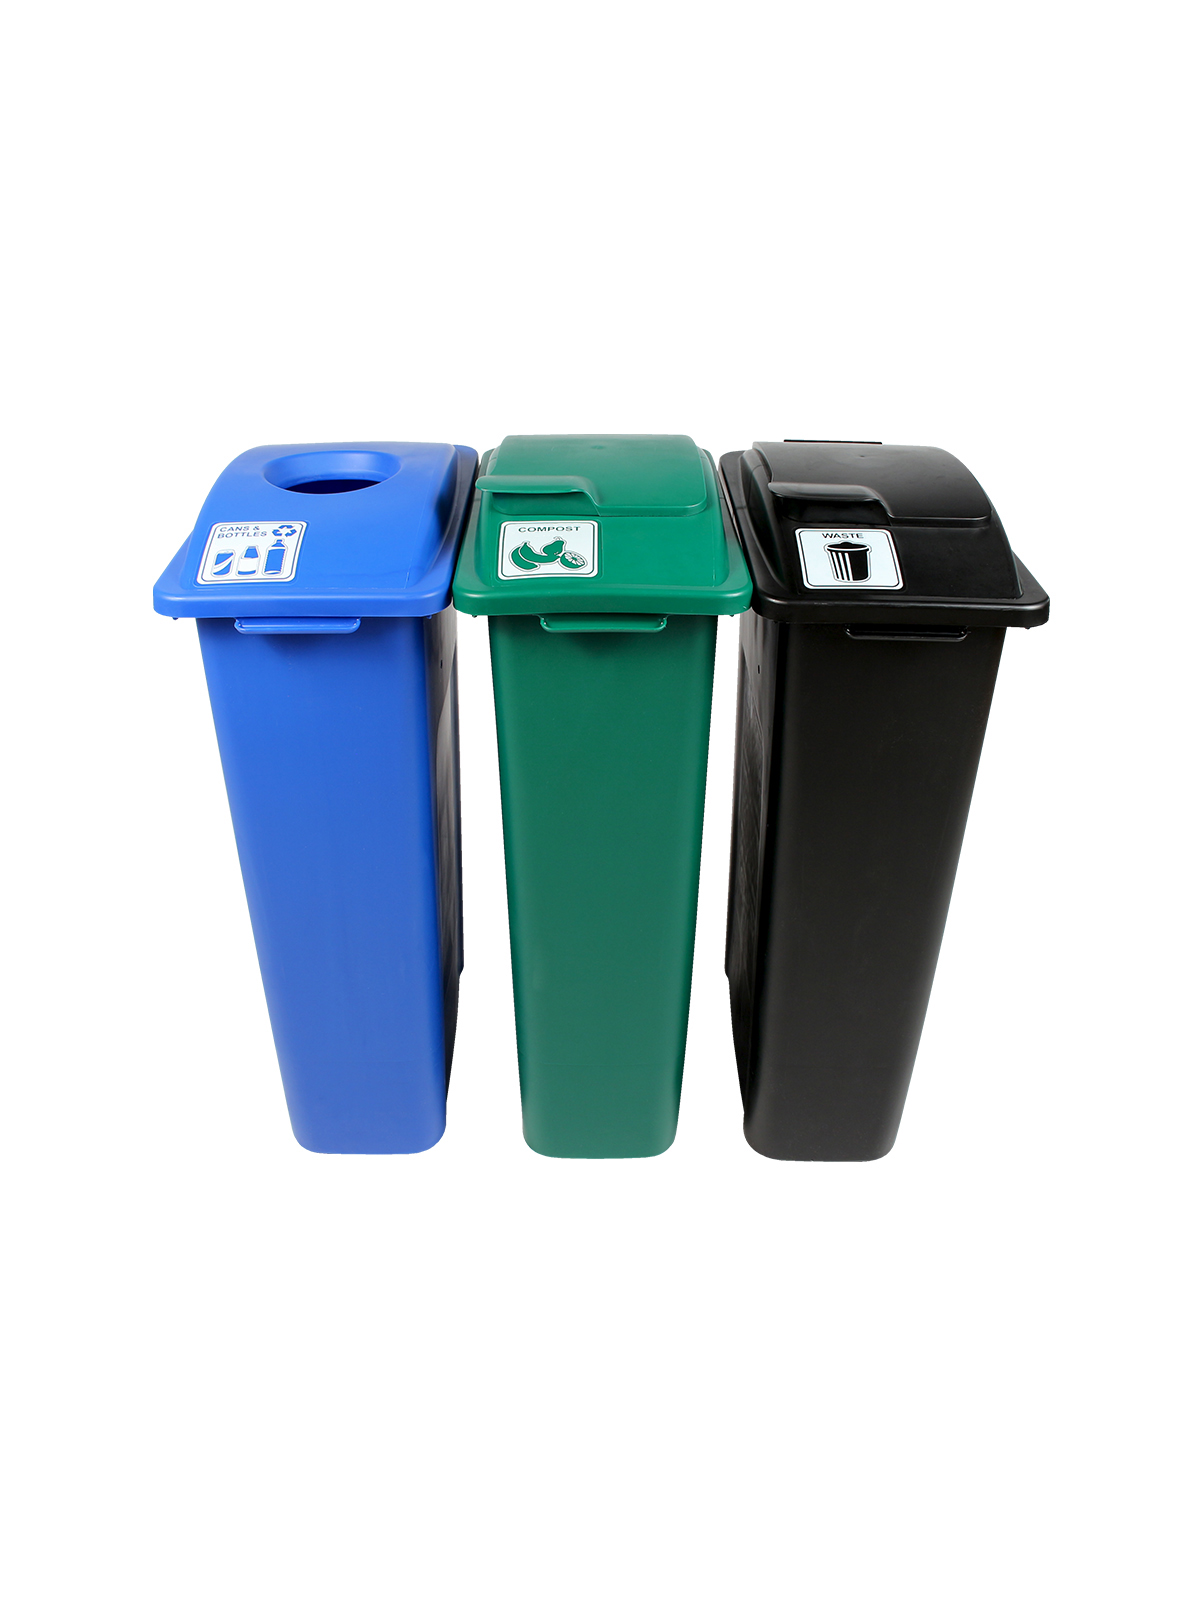 WASTE WATCHER - Triple - Cans & Bottles-Compost-Waste - Circle-Solid Lift-Solid Lift - Blue-Green-Black